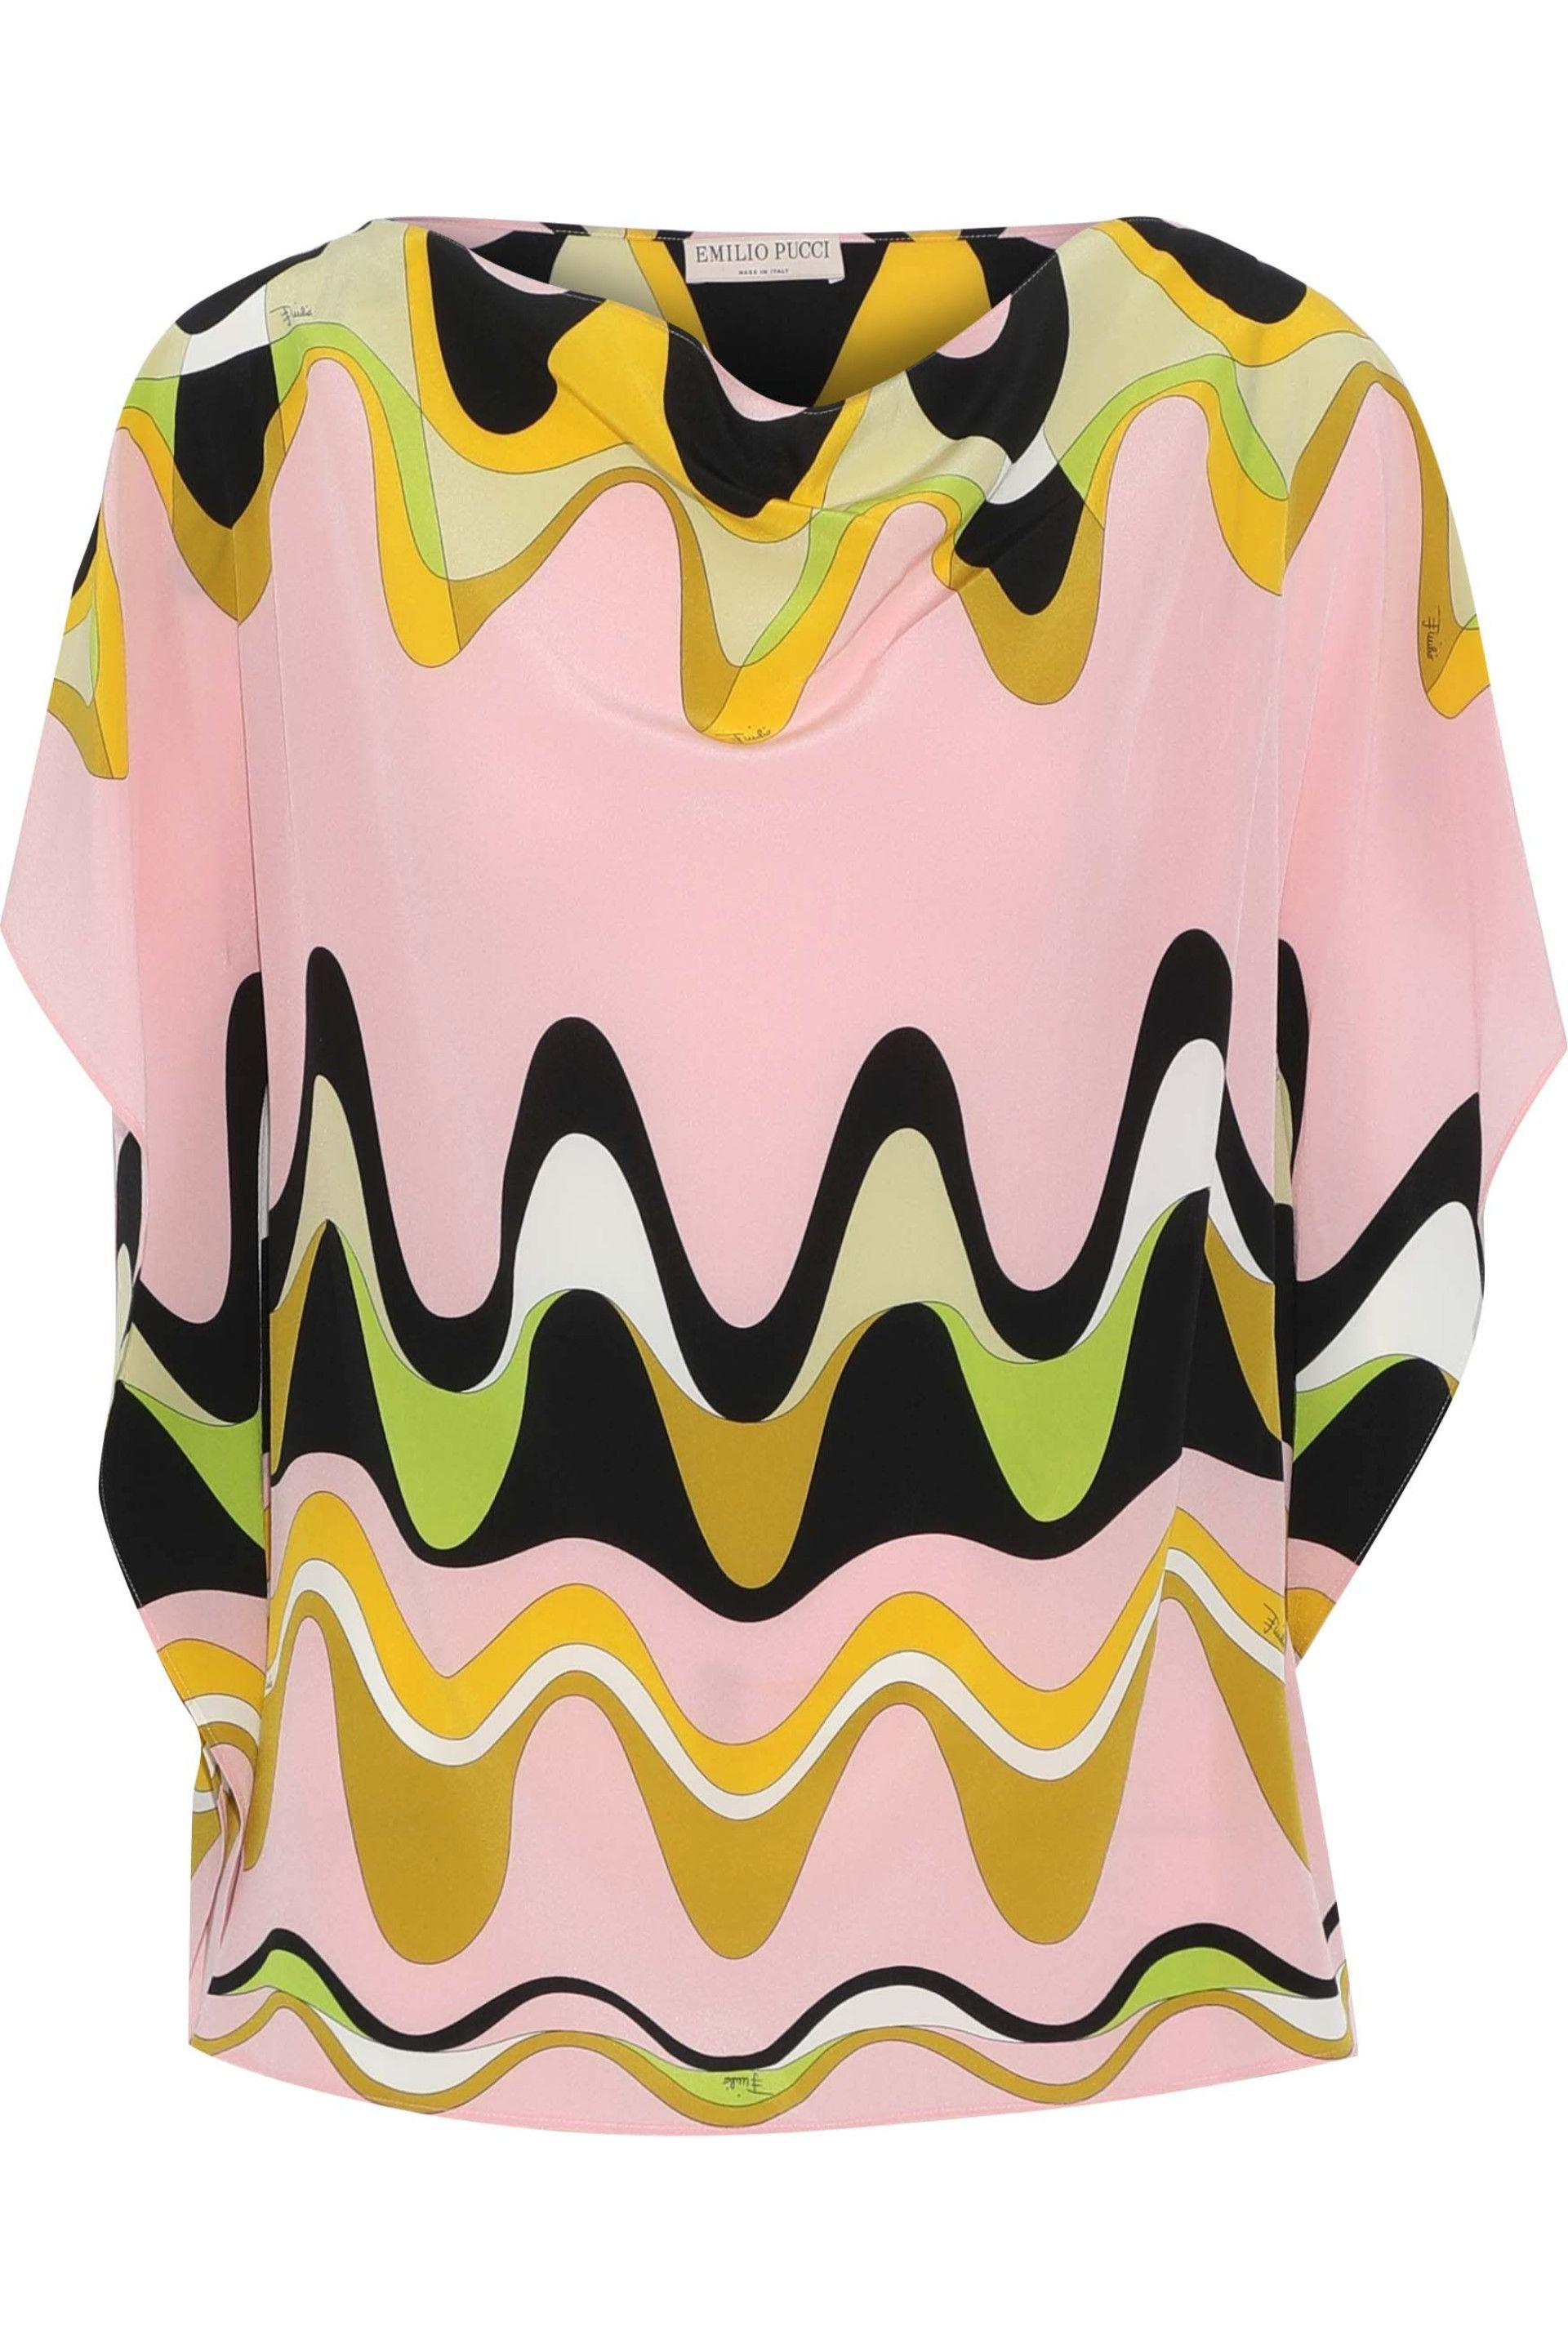 03944dcfb3752e Emilio Pucci - Black One-shoulder Printed Silk Top - Lyst. View fullscreen